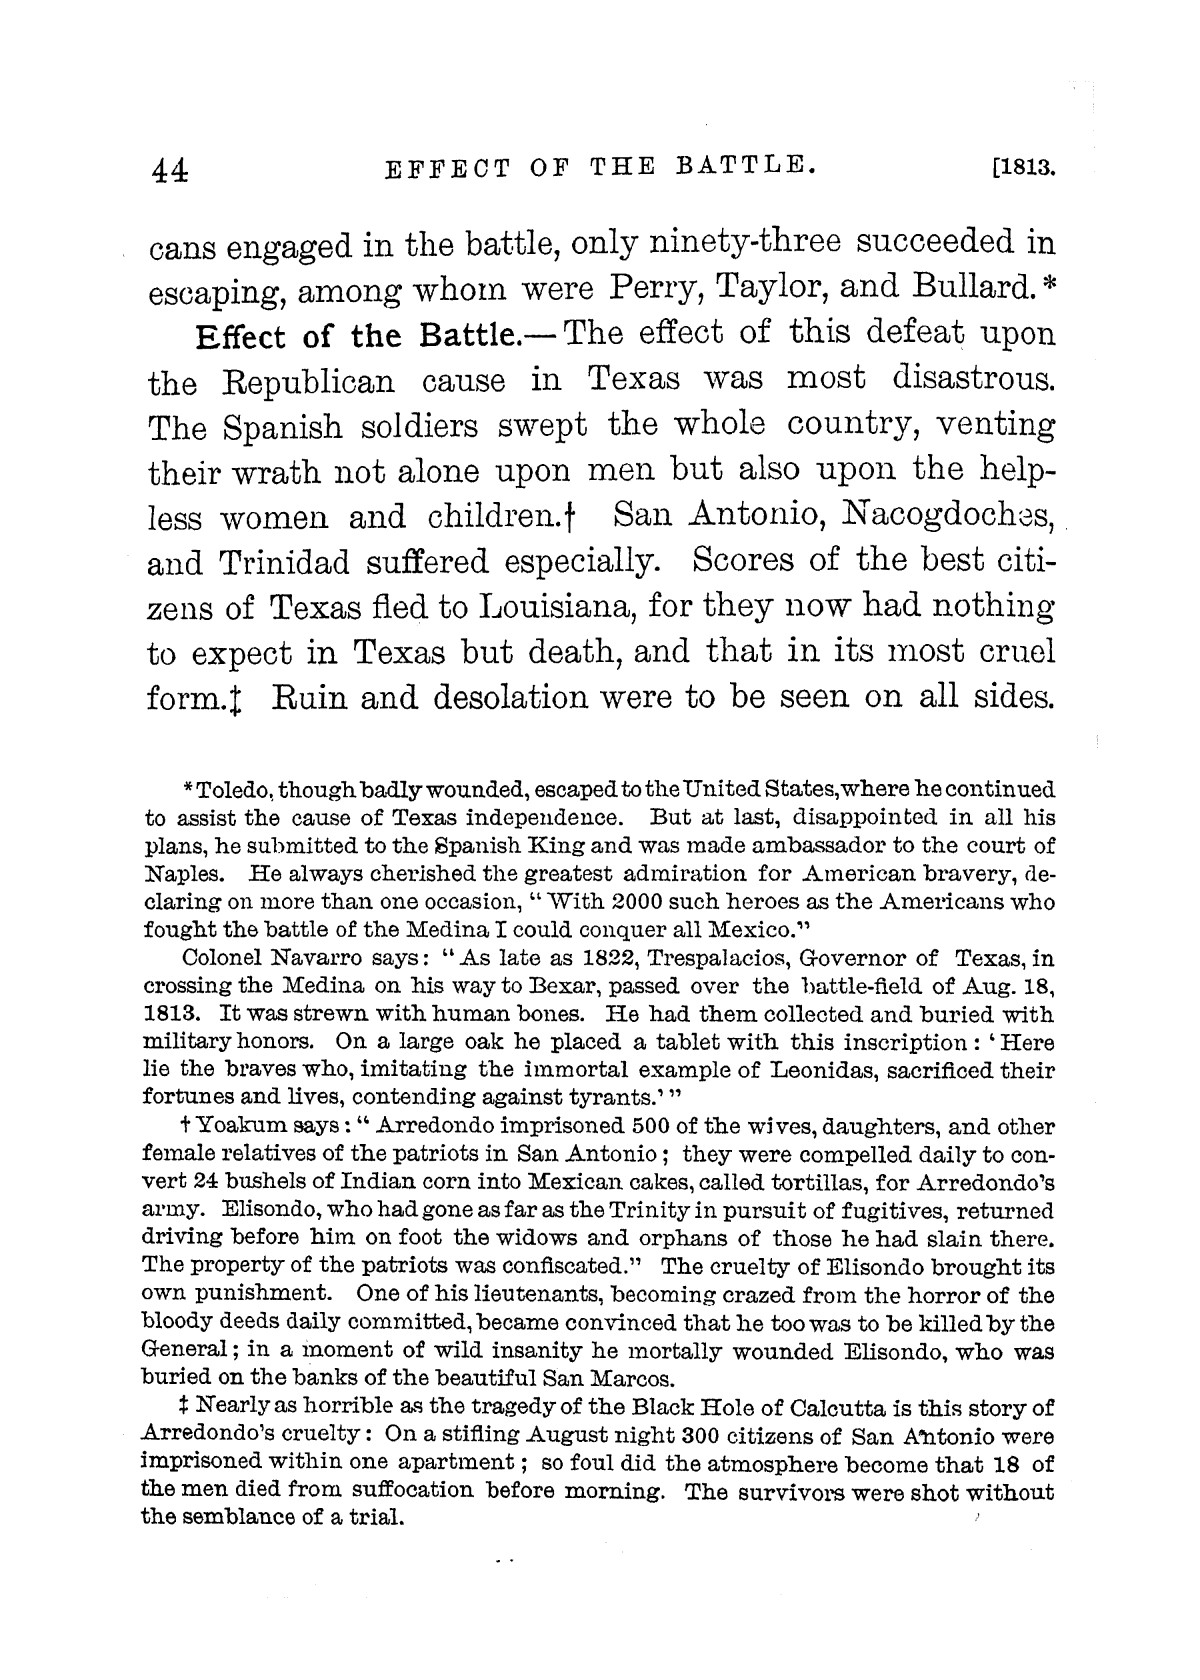 A new history of Texas for schools : also for general reading and for teachers preparing themselves for examination                                                                                                      [Sequence #]: 58 of 412